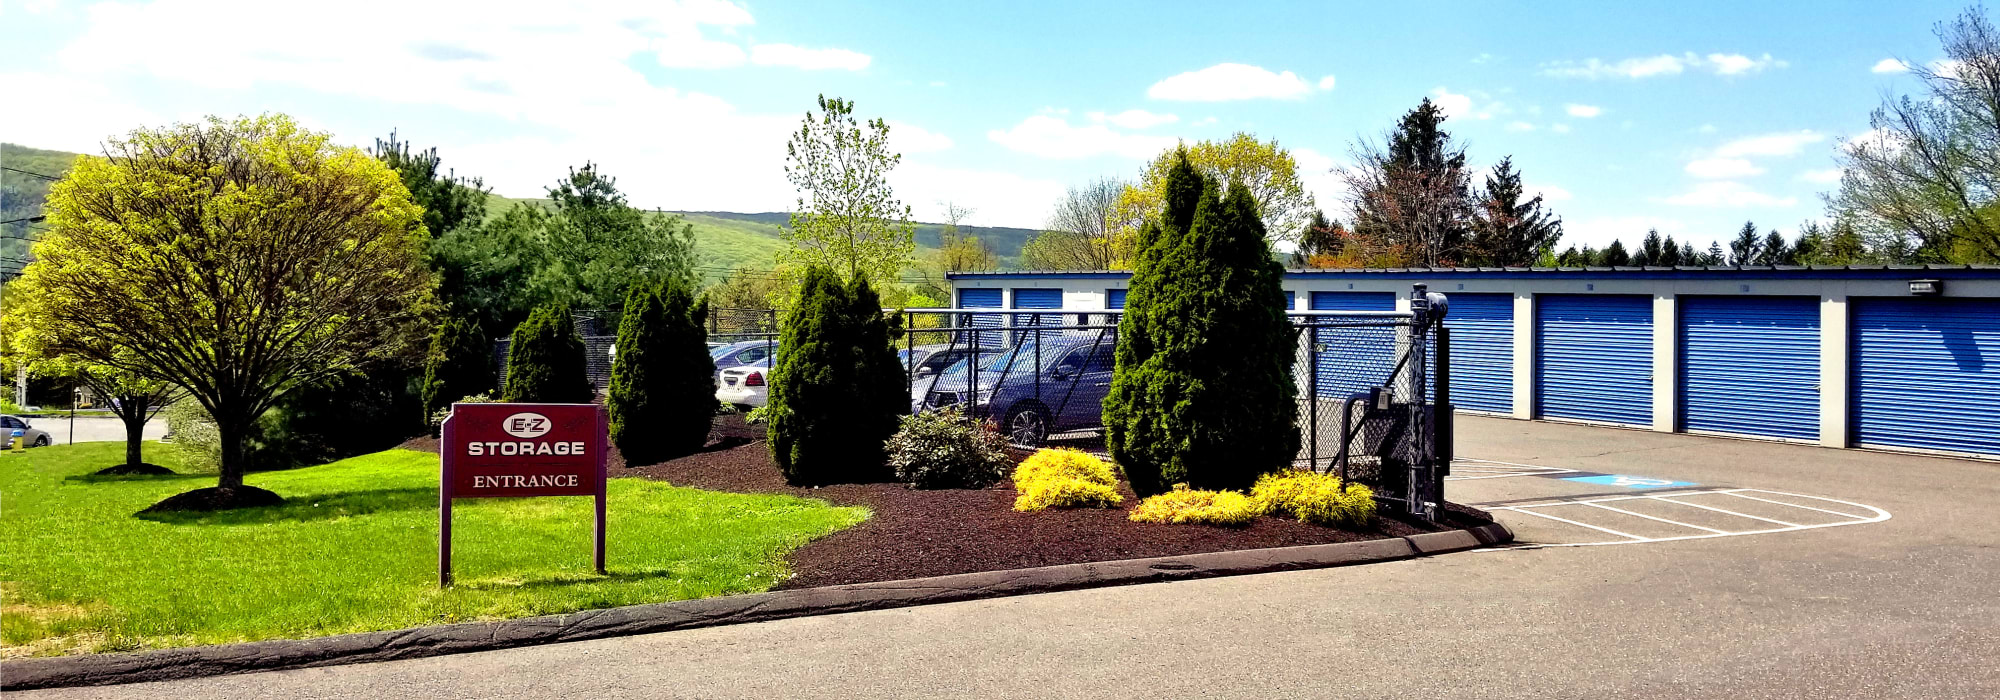 EZ Storage in Southington, CT